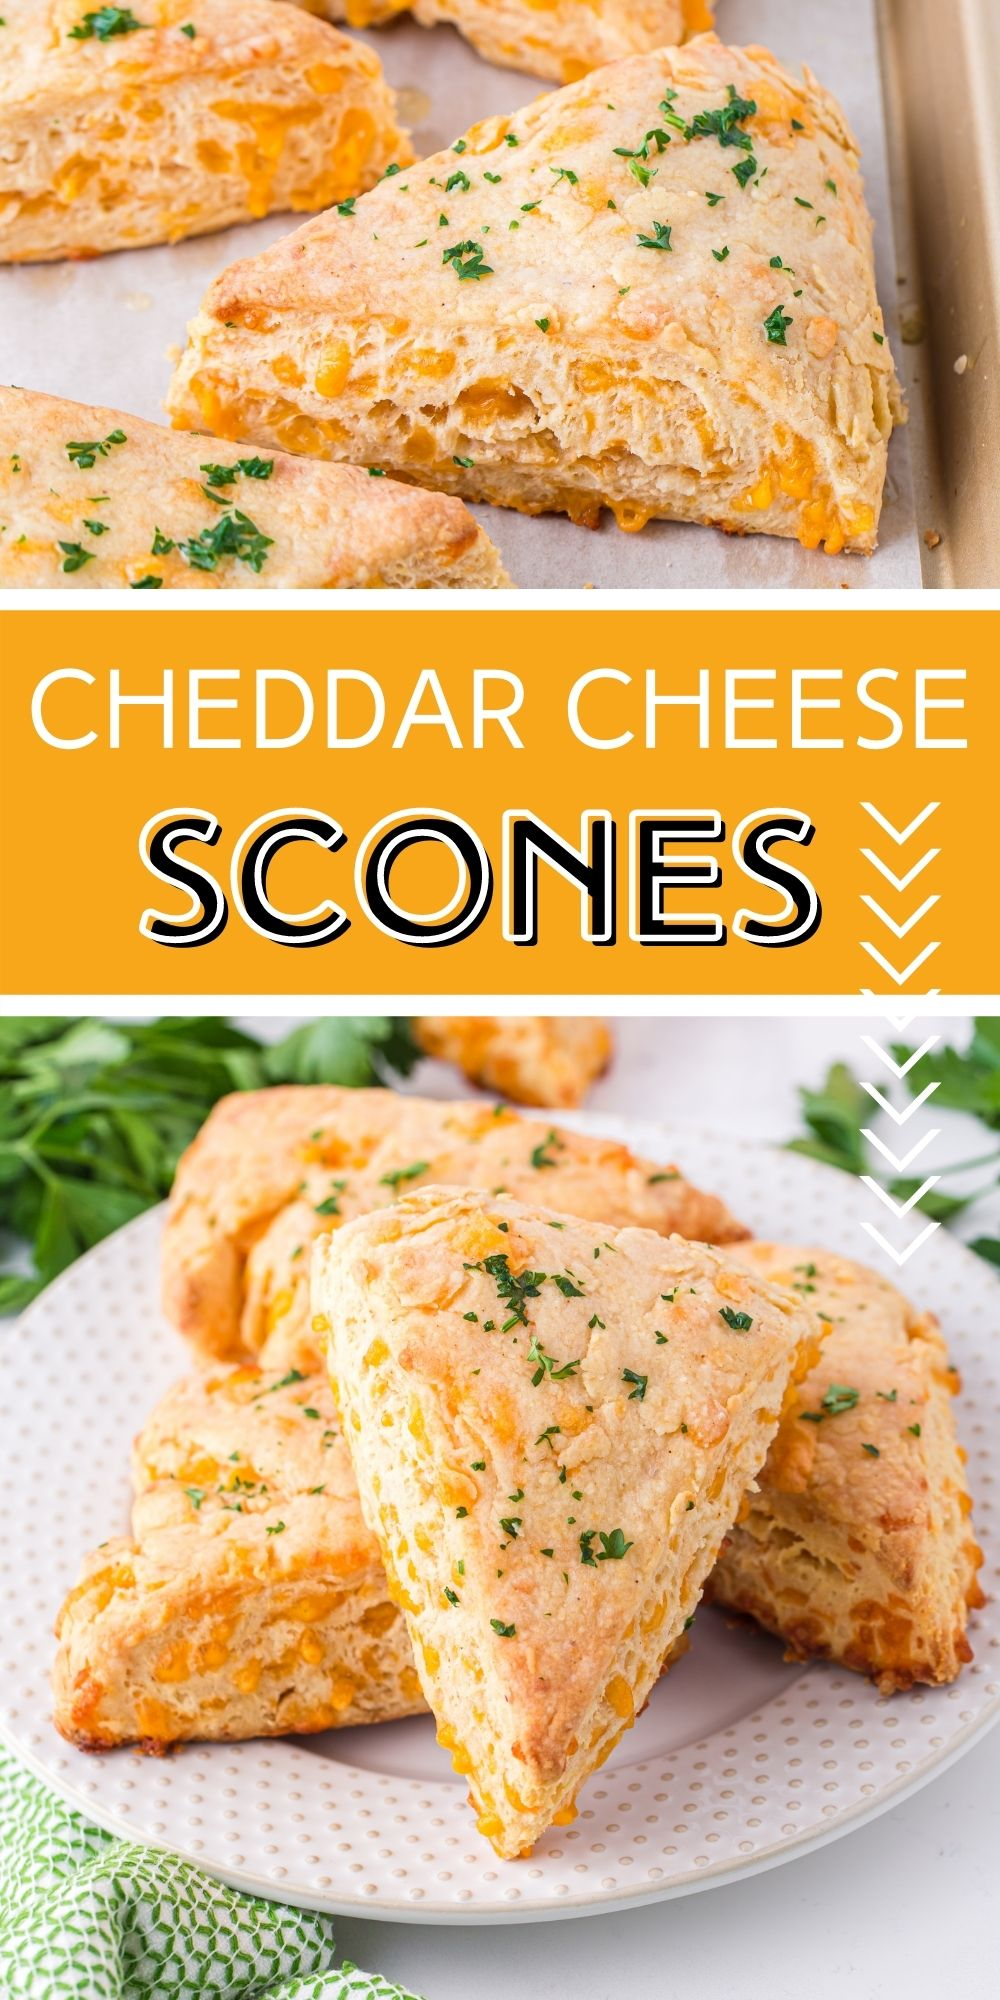 These Cheddar Cheese Scones are the savory version of the much loved sweet British scone. Great for breakfast or paired with a salad. via @familyfresh